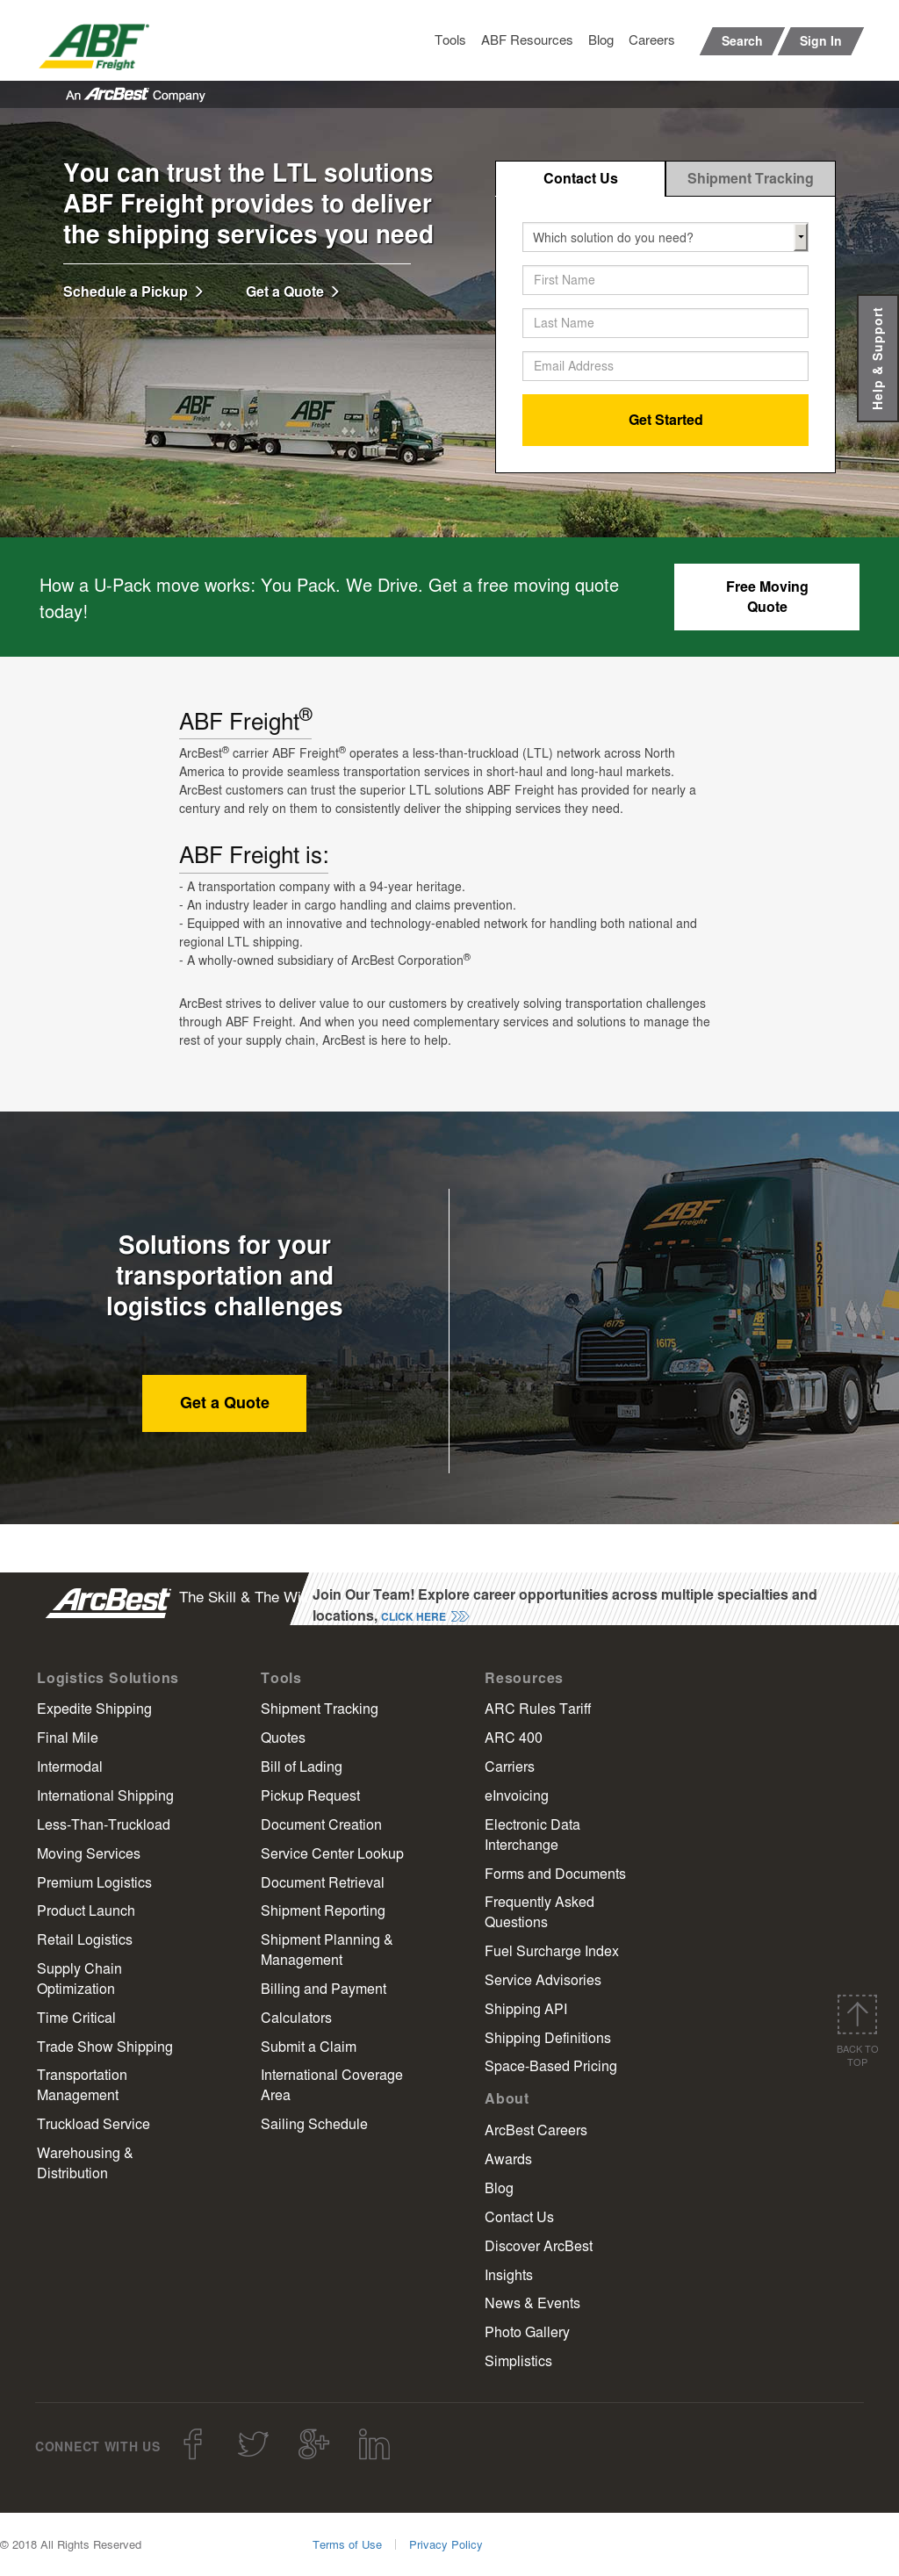 ABF Freight System website history